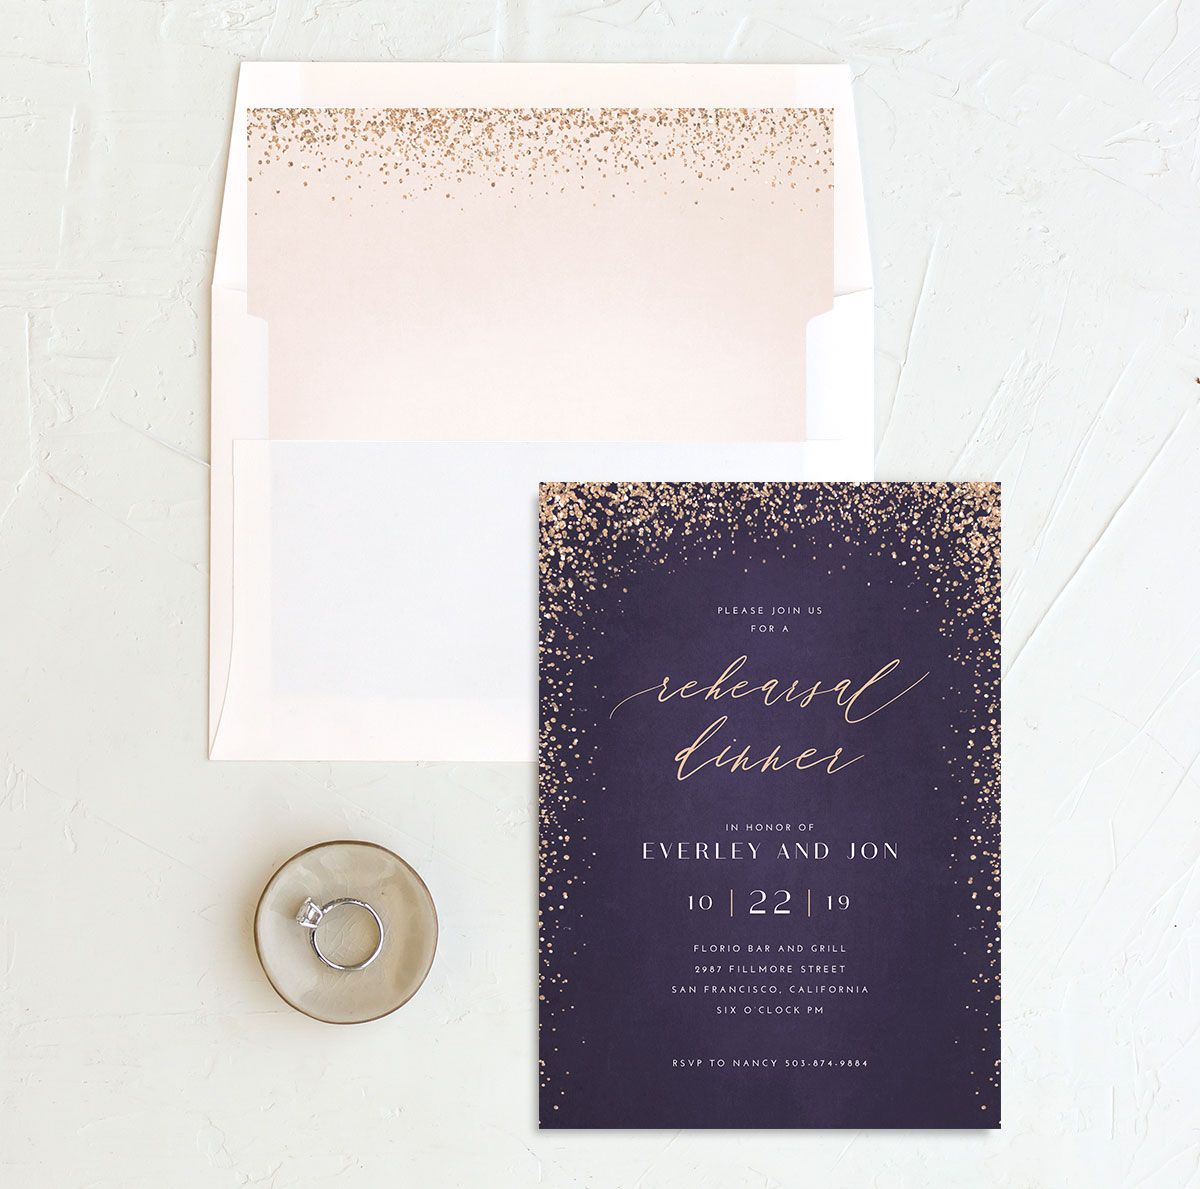 Sparkling Romance rehearsal dinner invitation purple with liner